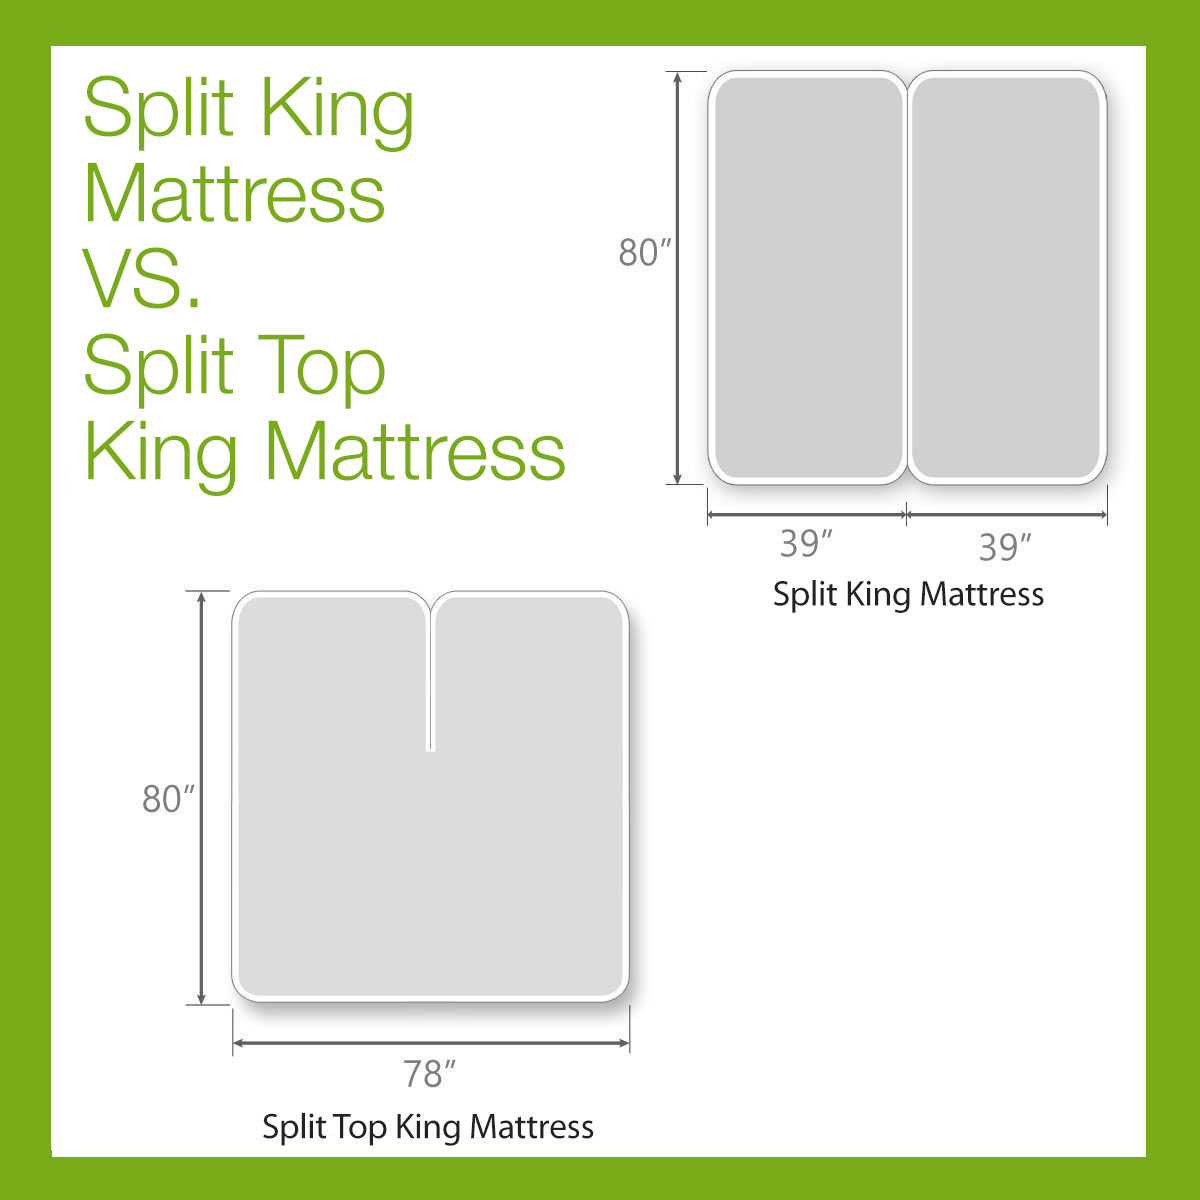 top-split-king-mattress-vs-split-king.jpg